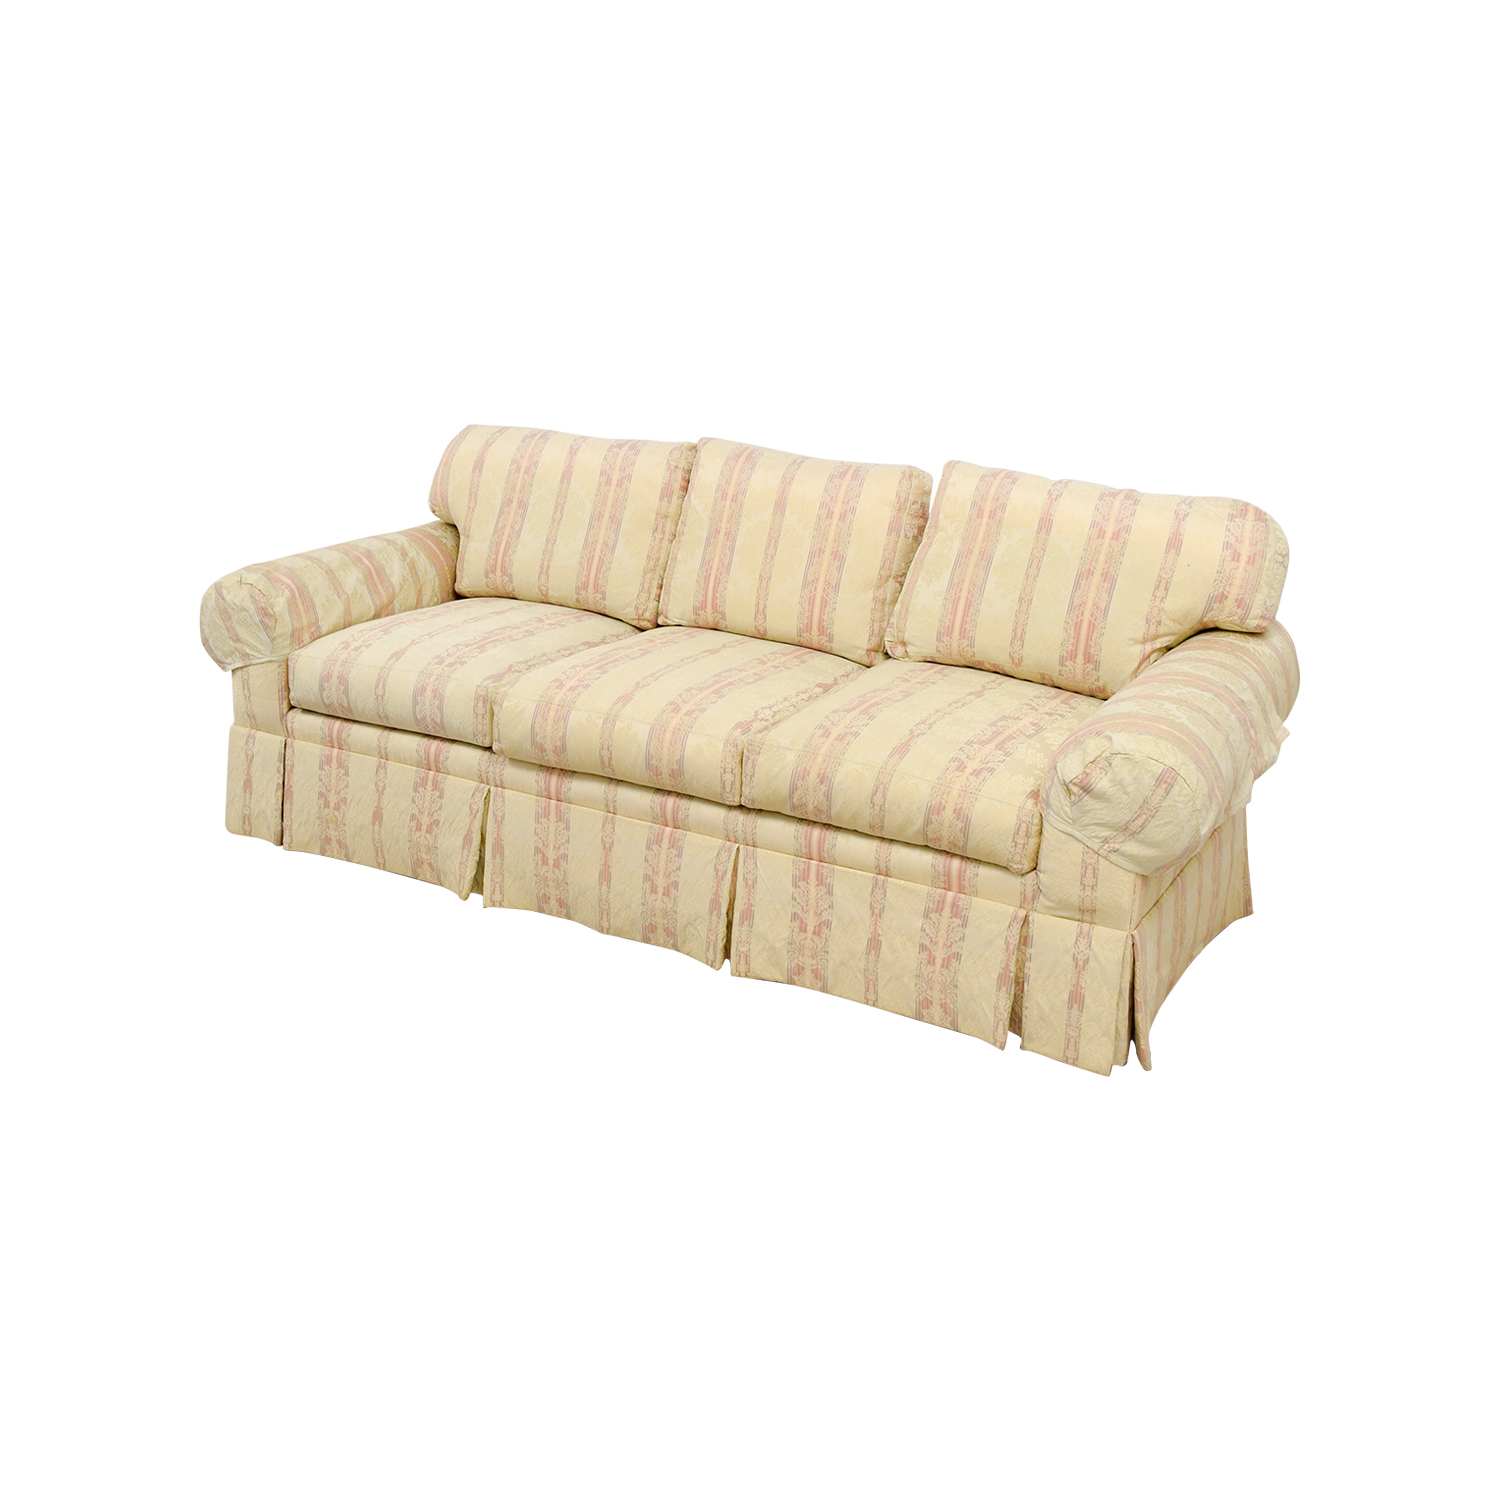 damask sofa bed teno light gray cover 90 off mh stark cromwell collection custom